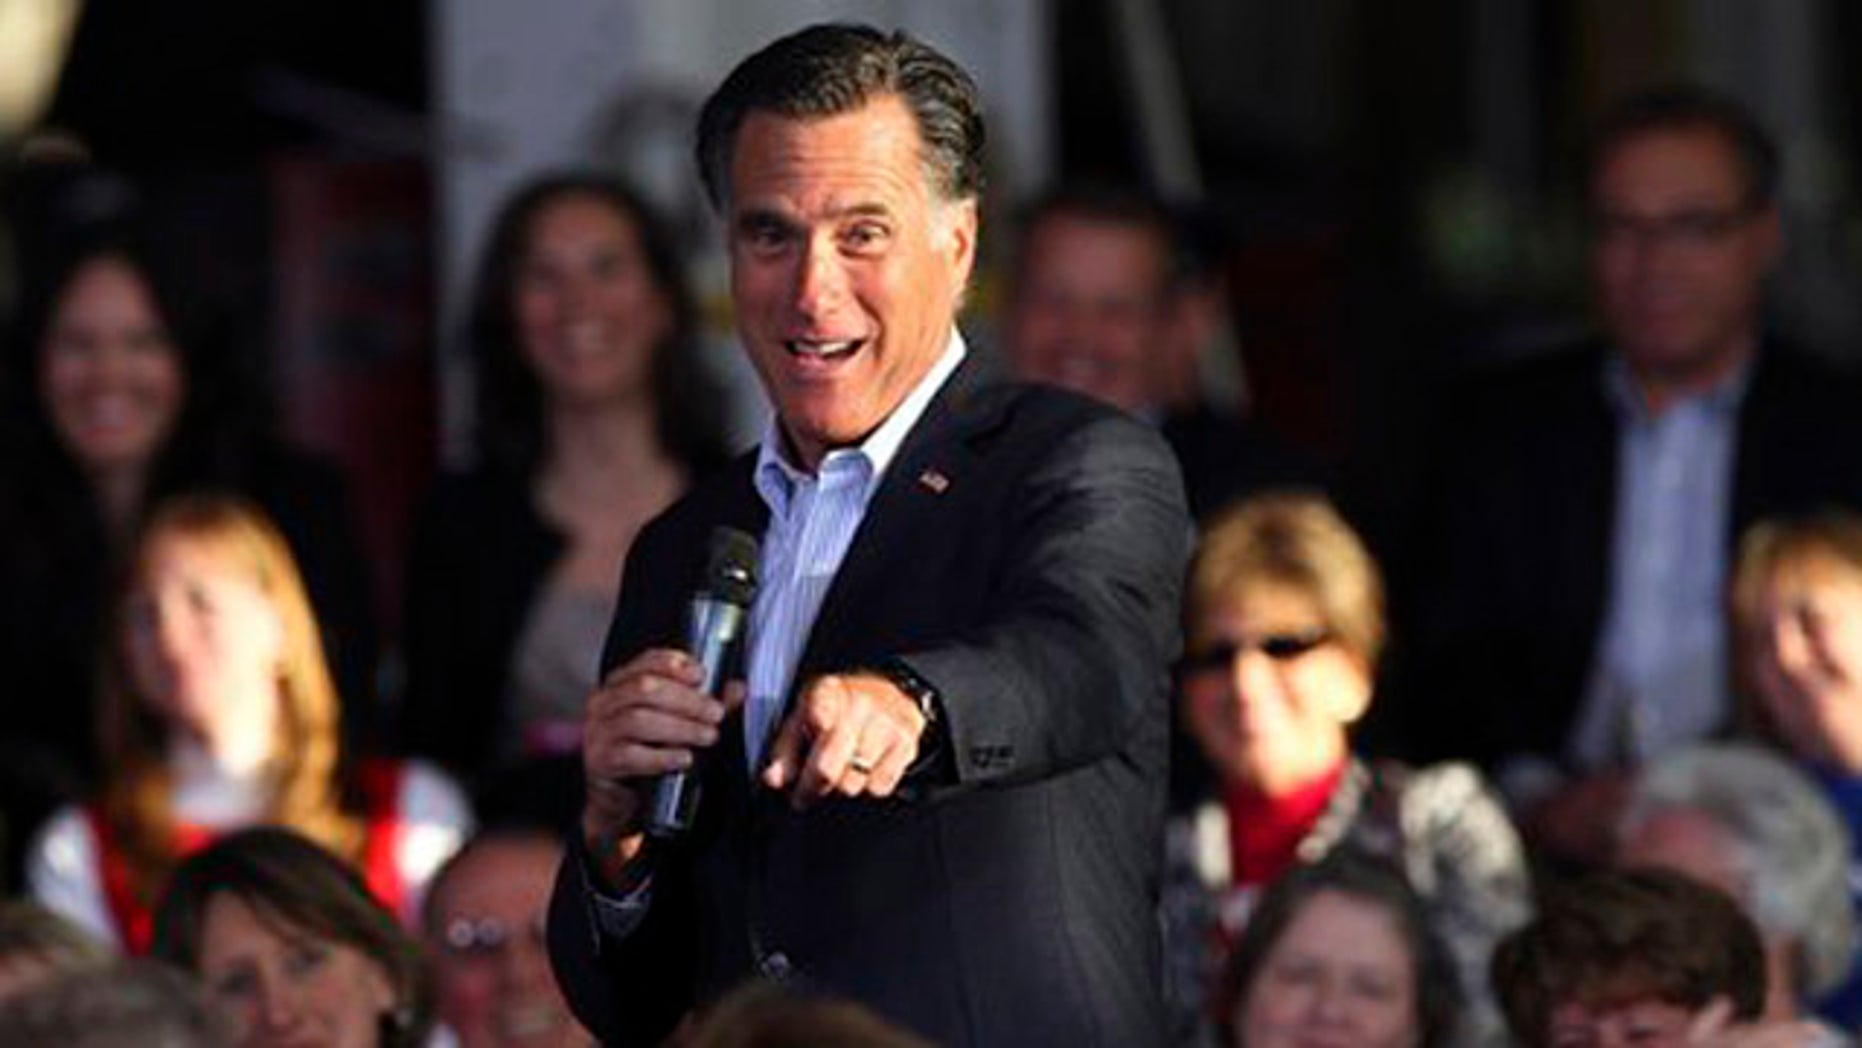 Republican presidential candidate, former Massachusetts Gov. Mitt Romney speaks during a campaign stop at RC Fabricators on Tuesday, April 10, 2012, in Wilmington, Del. (AP Photo/The Wilmington News-Journal, Suchat Pederson) NO SALES